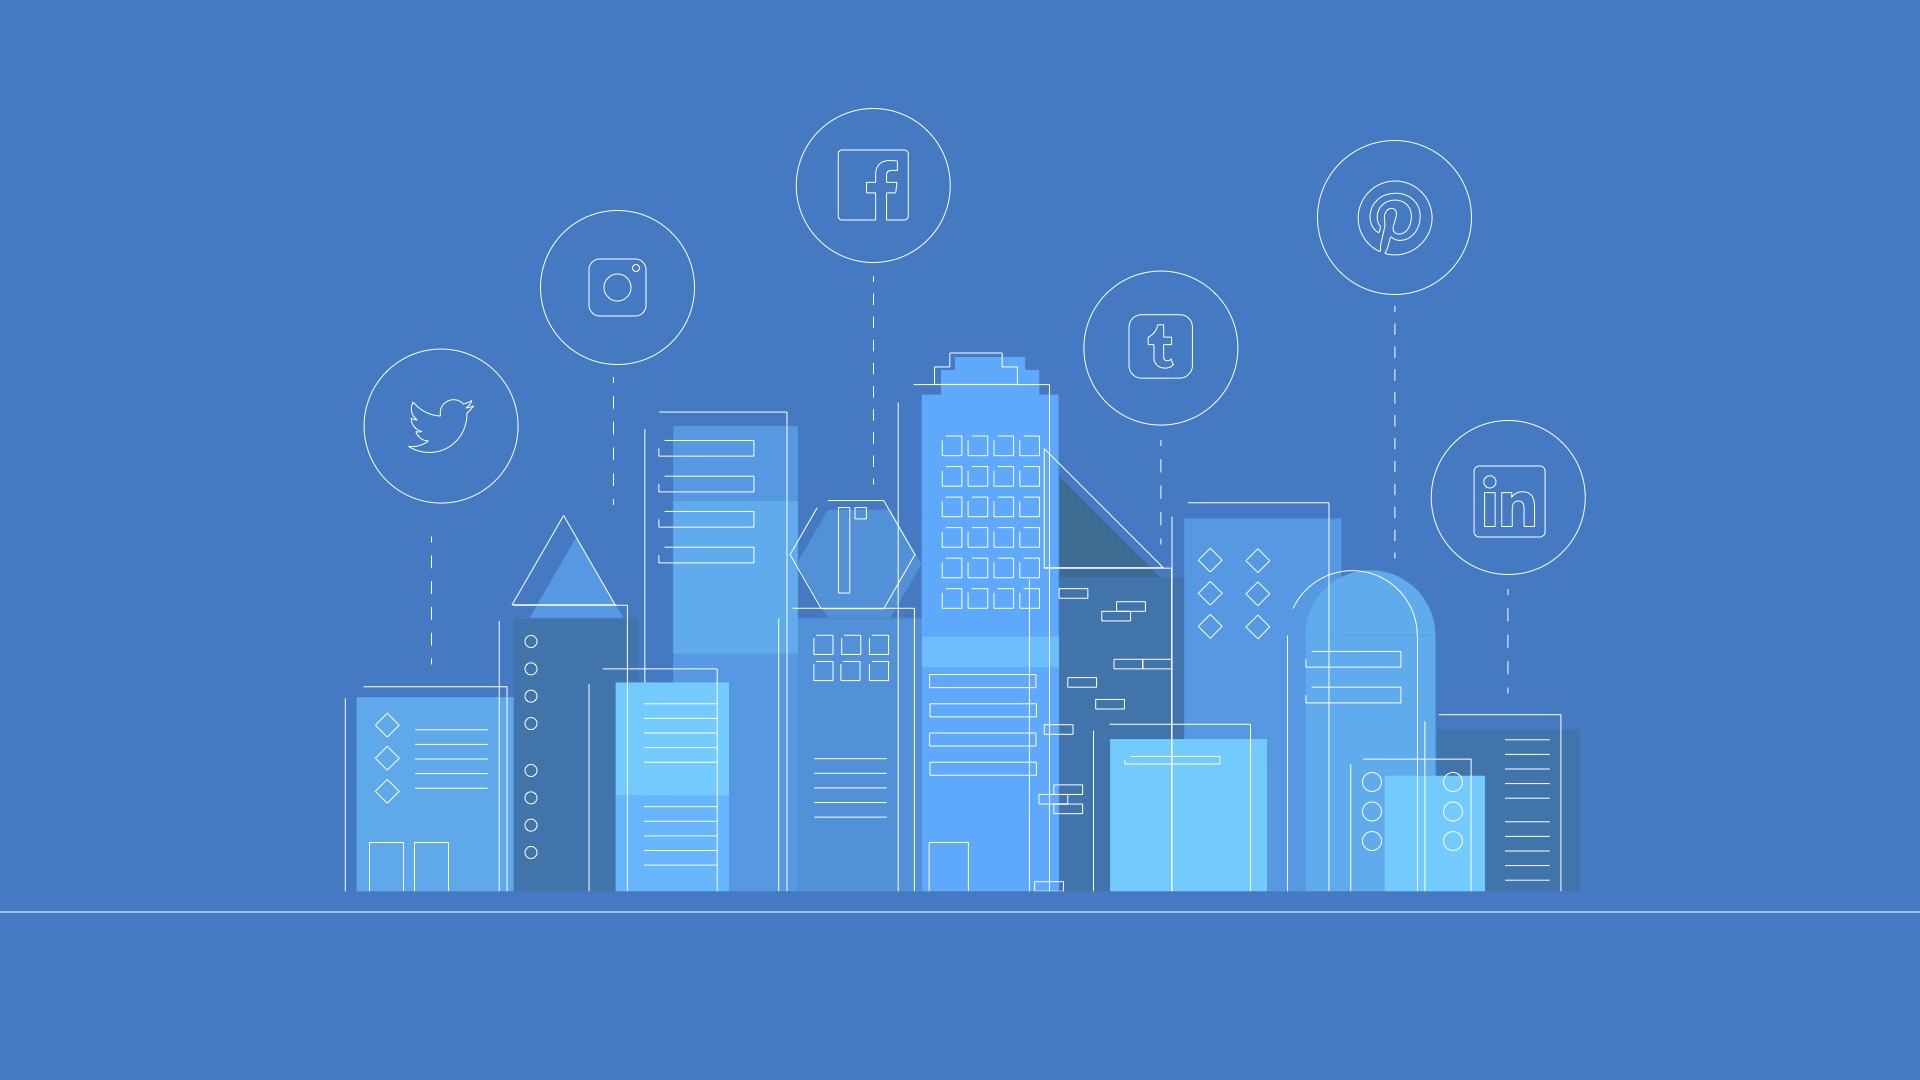 illustration-of-city-with-social-media-icons.jpg